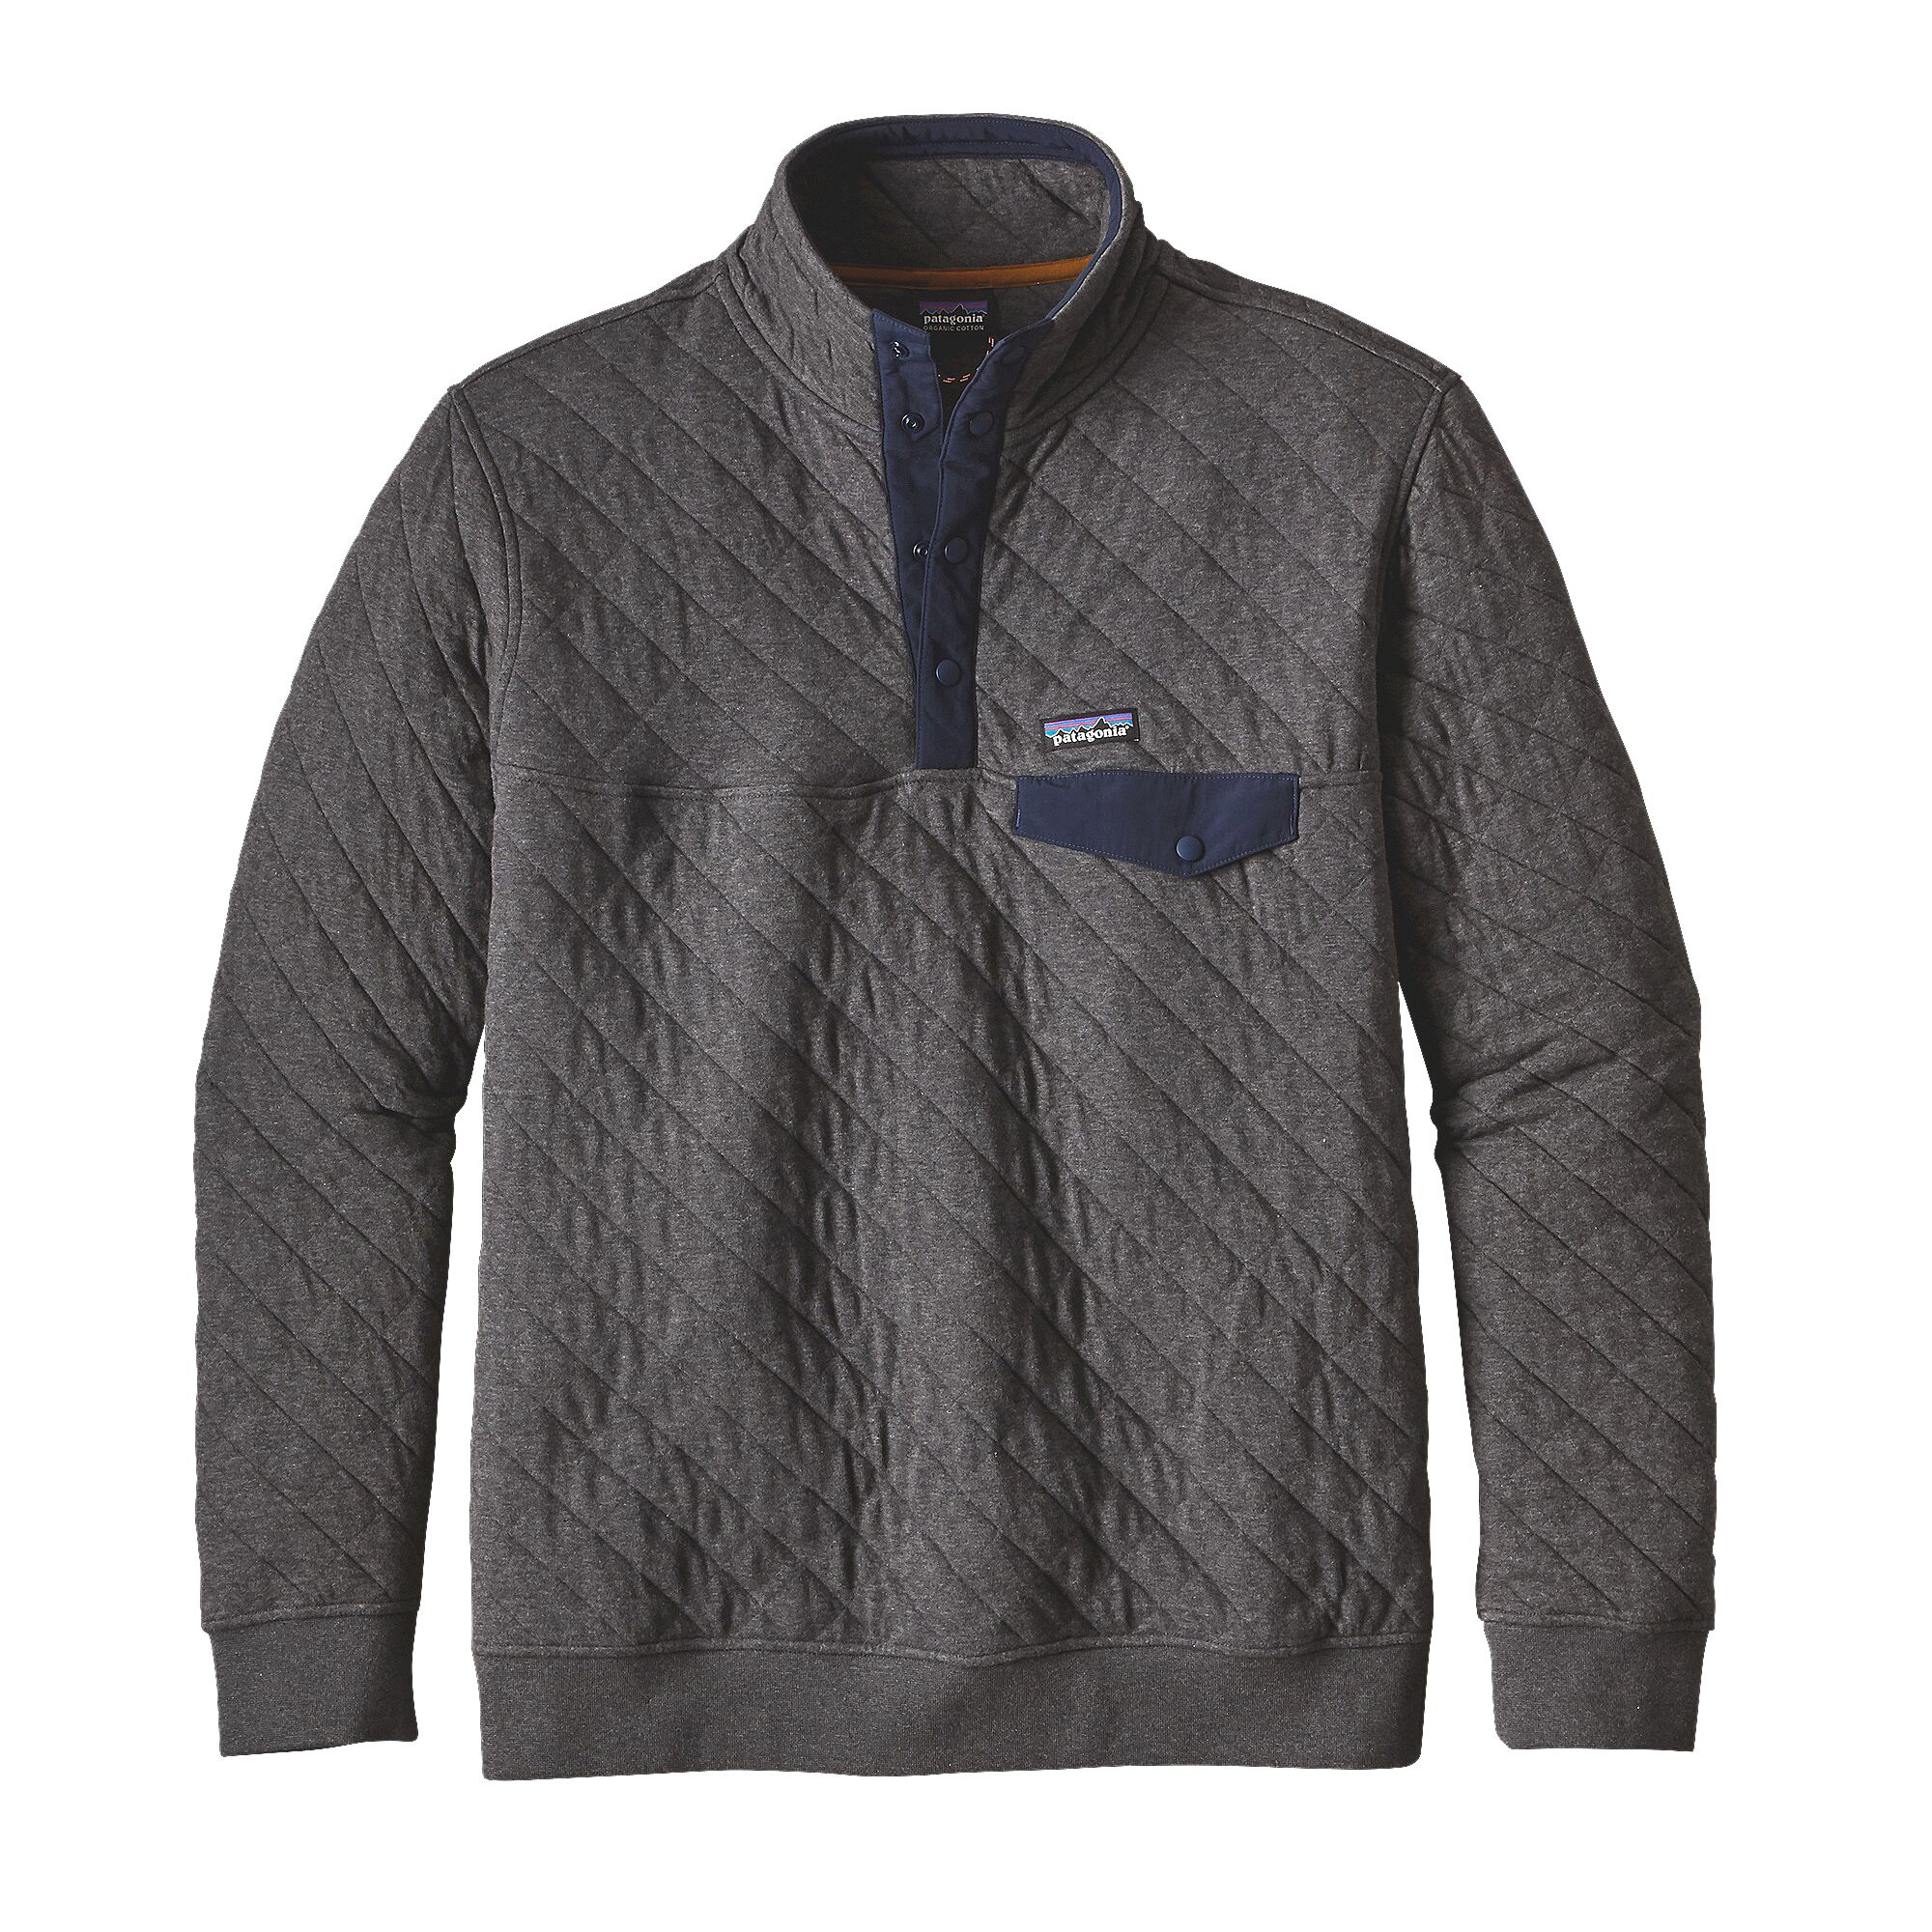 PATAGONIA MEN'S COTTON QUILT SNAP-T PULLOVER (25371)